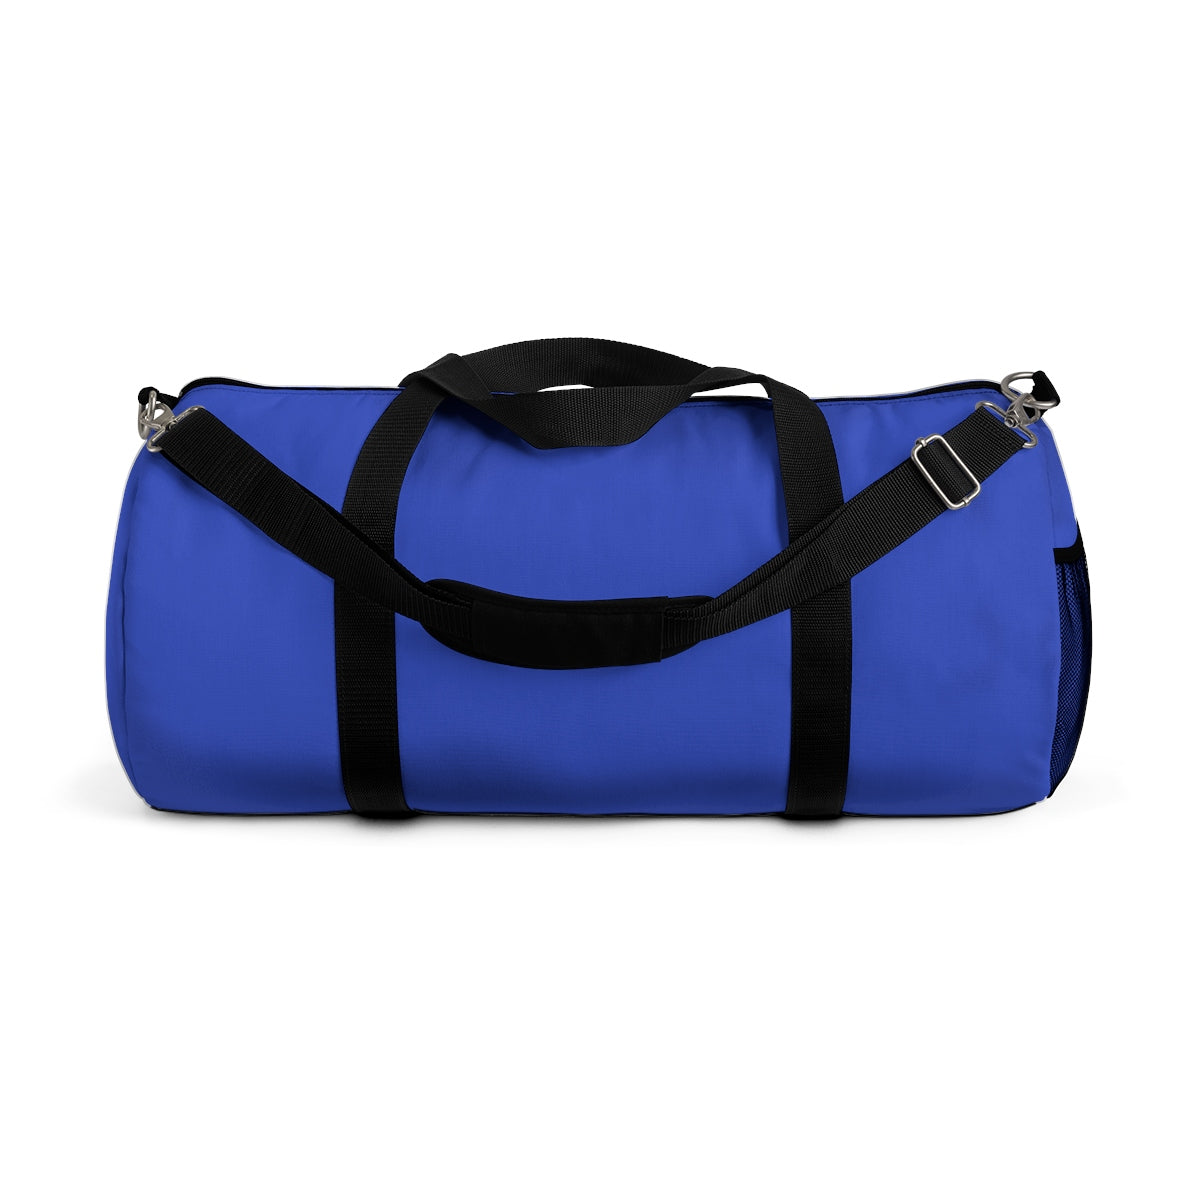 Violet Blue Solid Color All Day Small Or Large Size Duffel Bag, Made in USA-Duffel Bag-Small-Heidi Kimura Art LLC